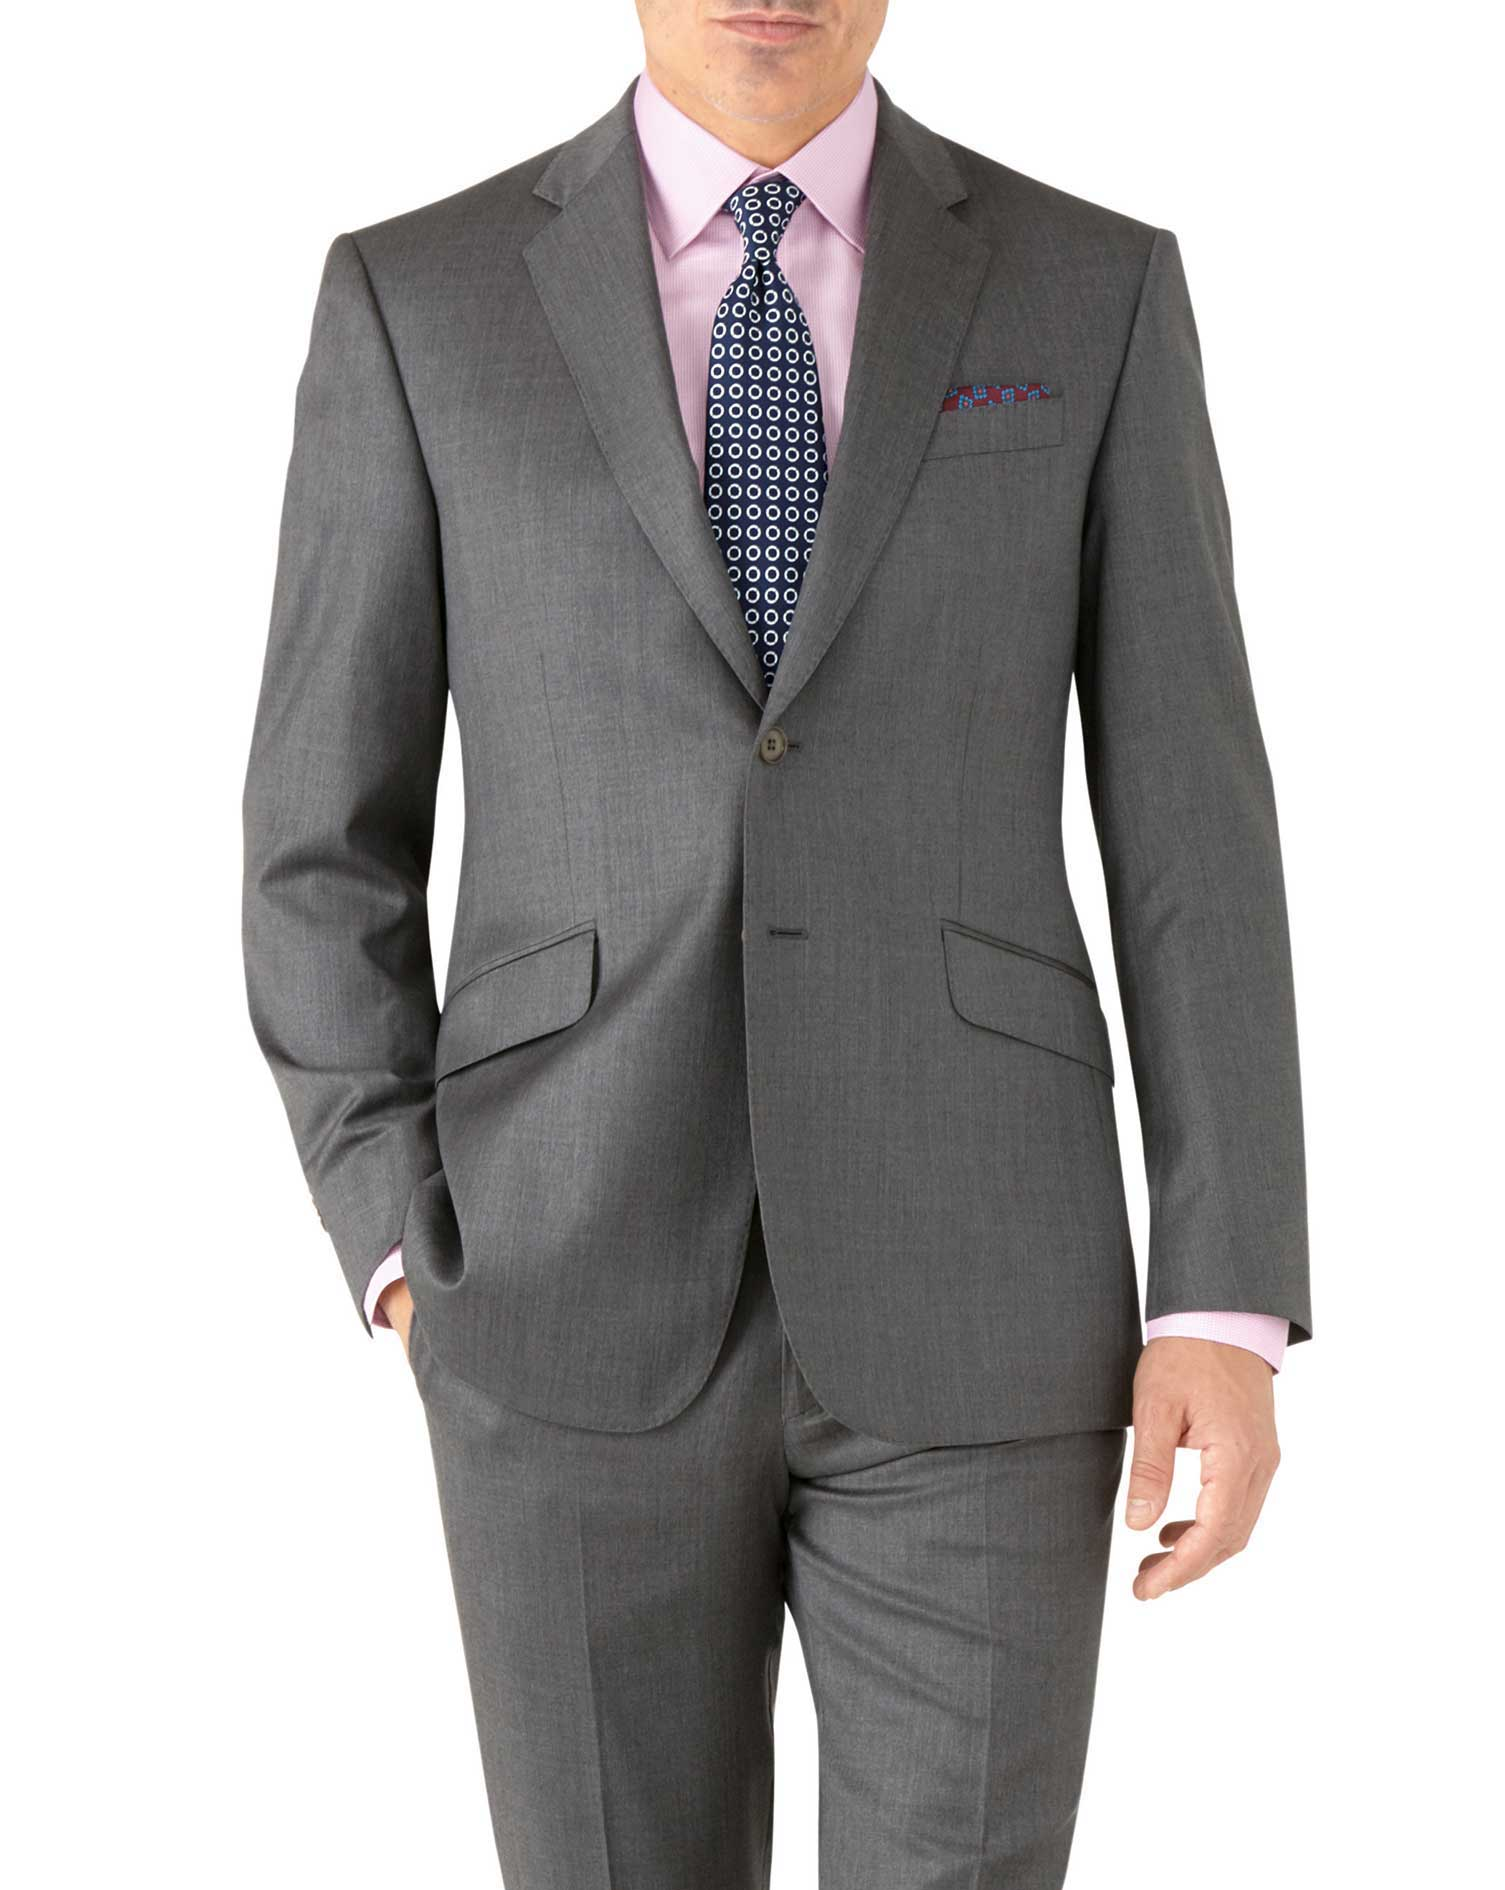 Grey Classic Fit Italian Suit Wool Jacket Size 40 Long by Charles Tyrwhitt